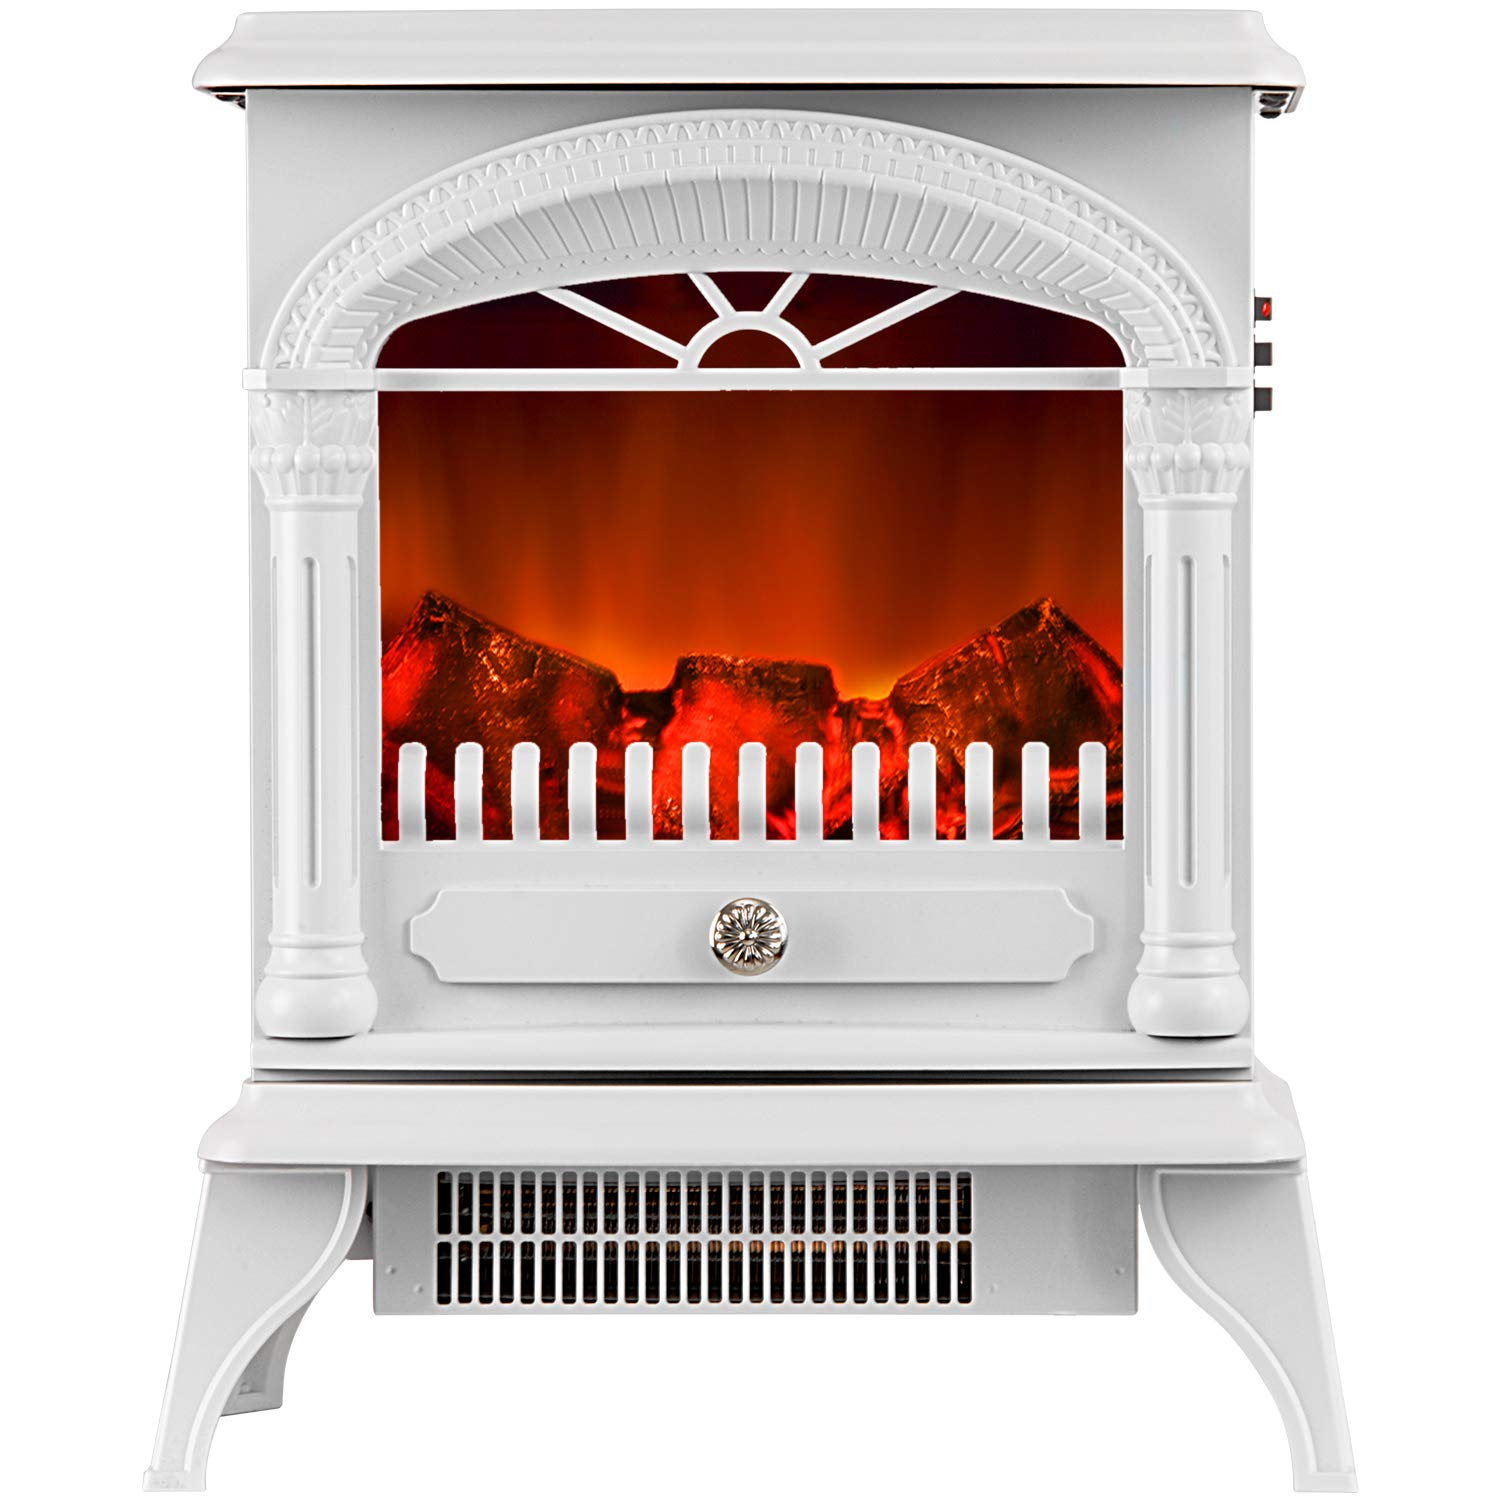 Leisure Zone Electric Stove Heater Fire Place/Fireplace 1850W Portable - W41.5 X D21 X H48cm (White)